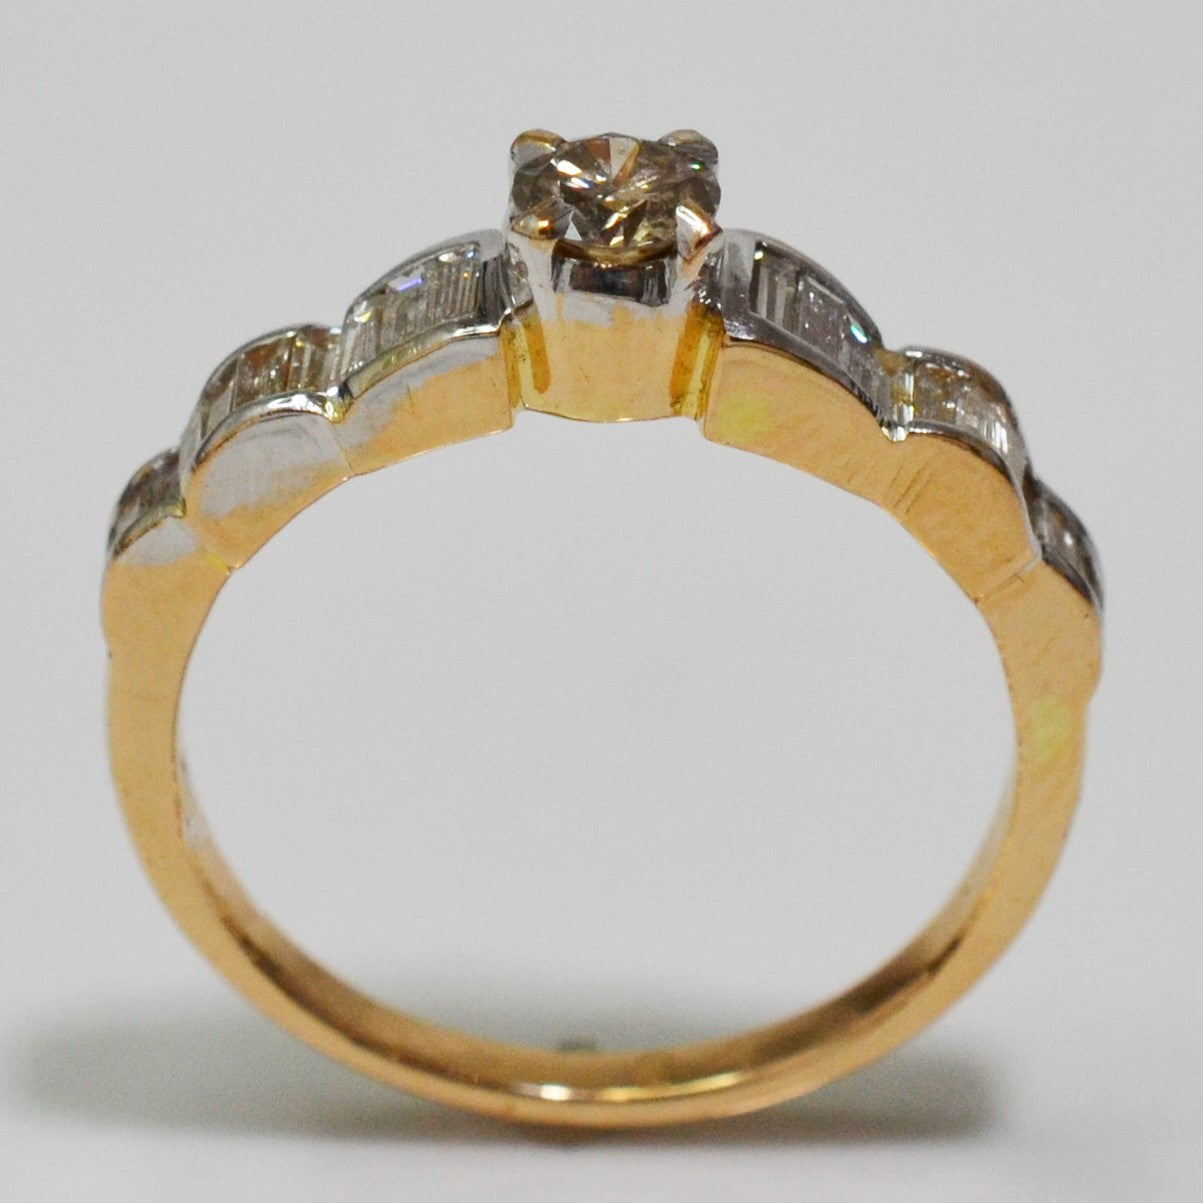 Vintage Baguette Diamond Engagement Ring | 0.62 ctw, SZ 7 |